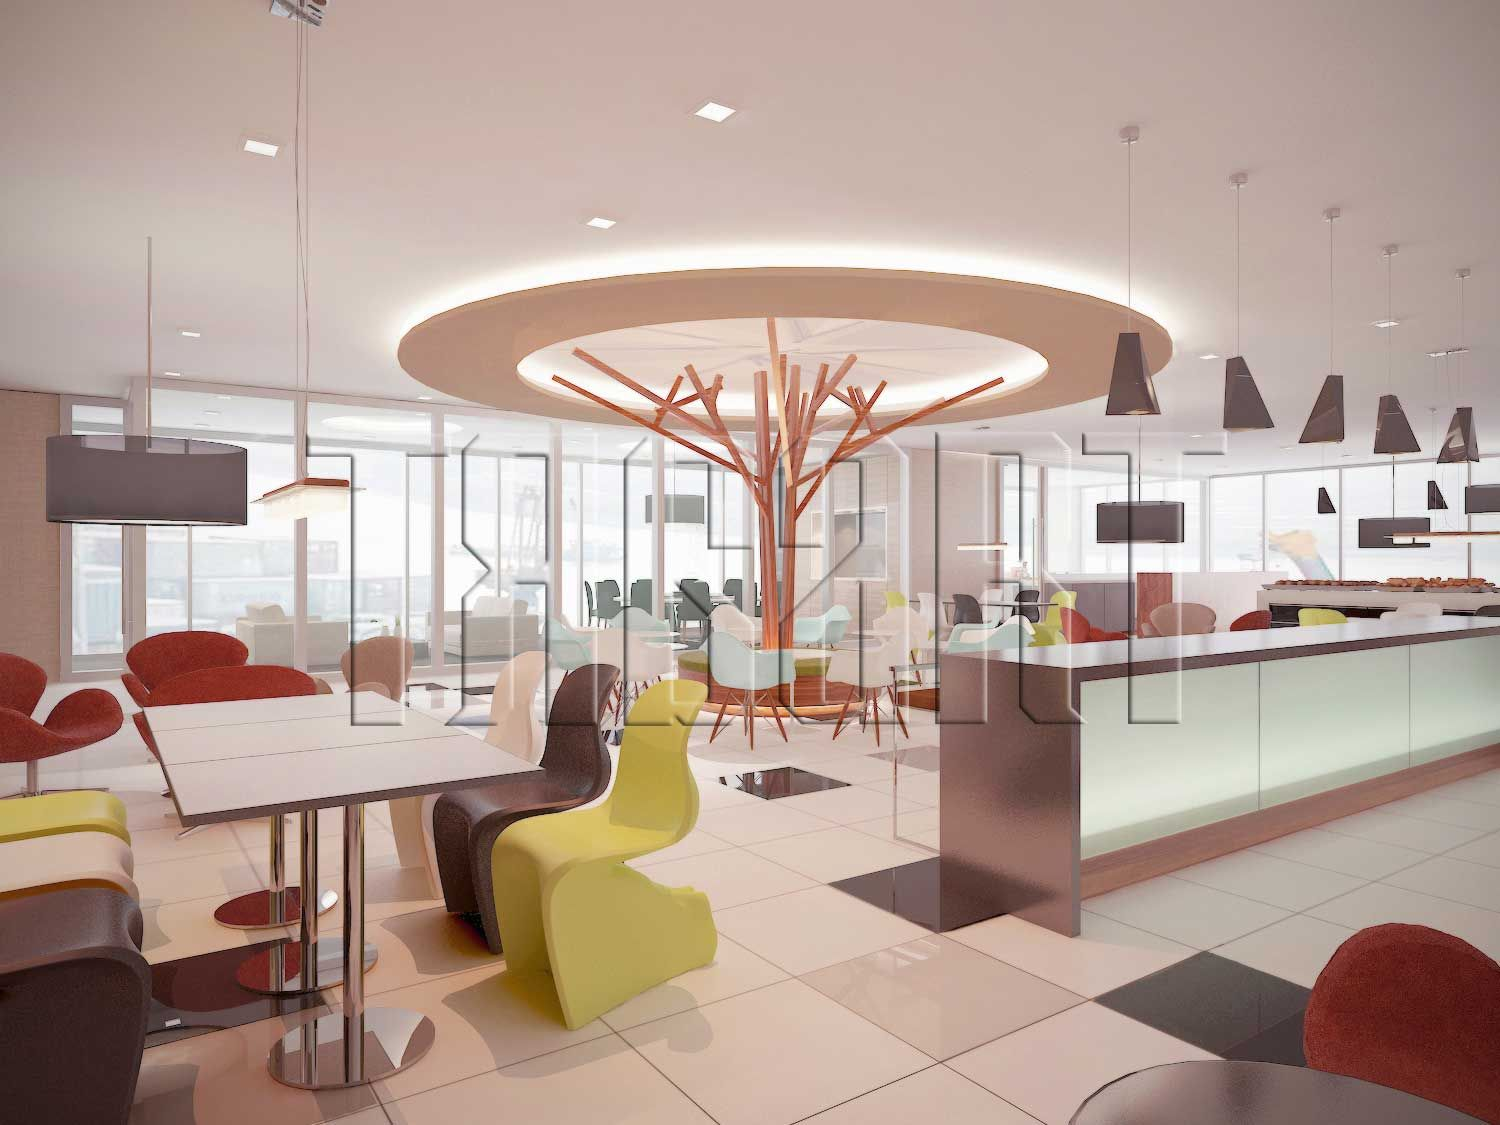 Interior design lunch room interior design process for Office lunch room design ideas